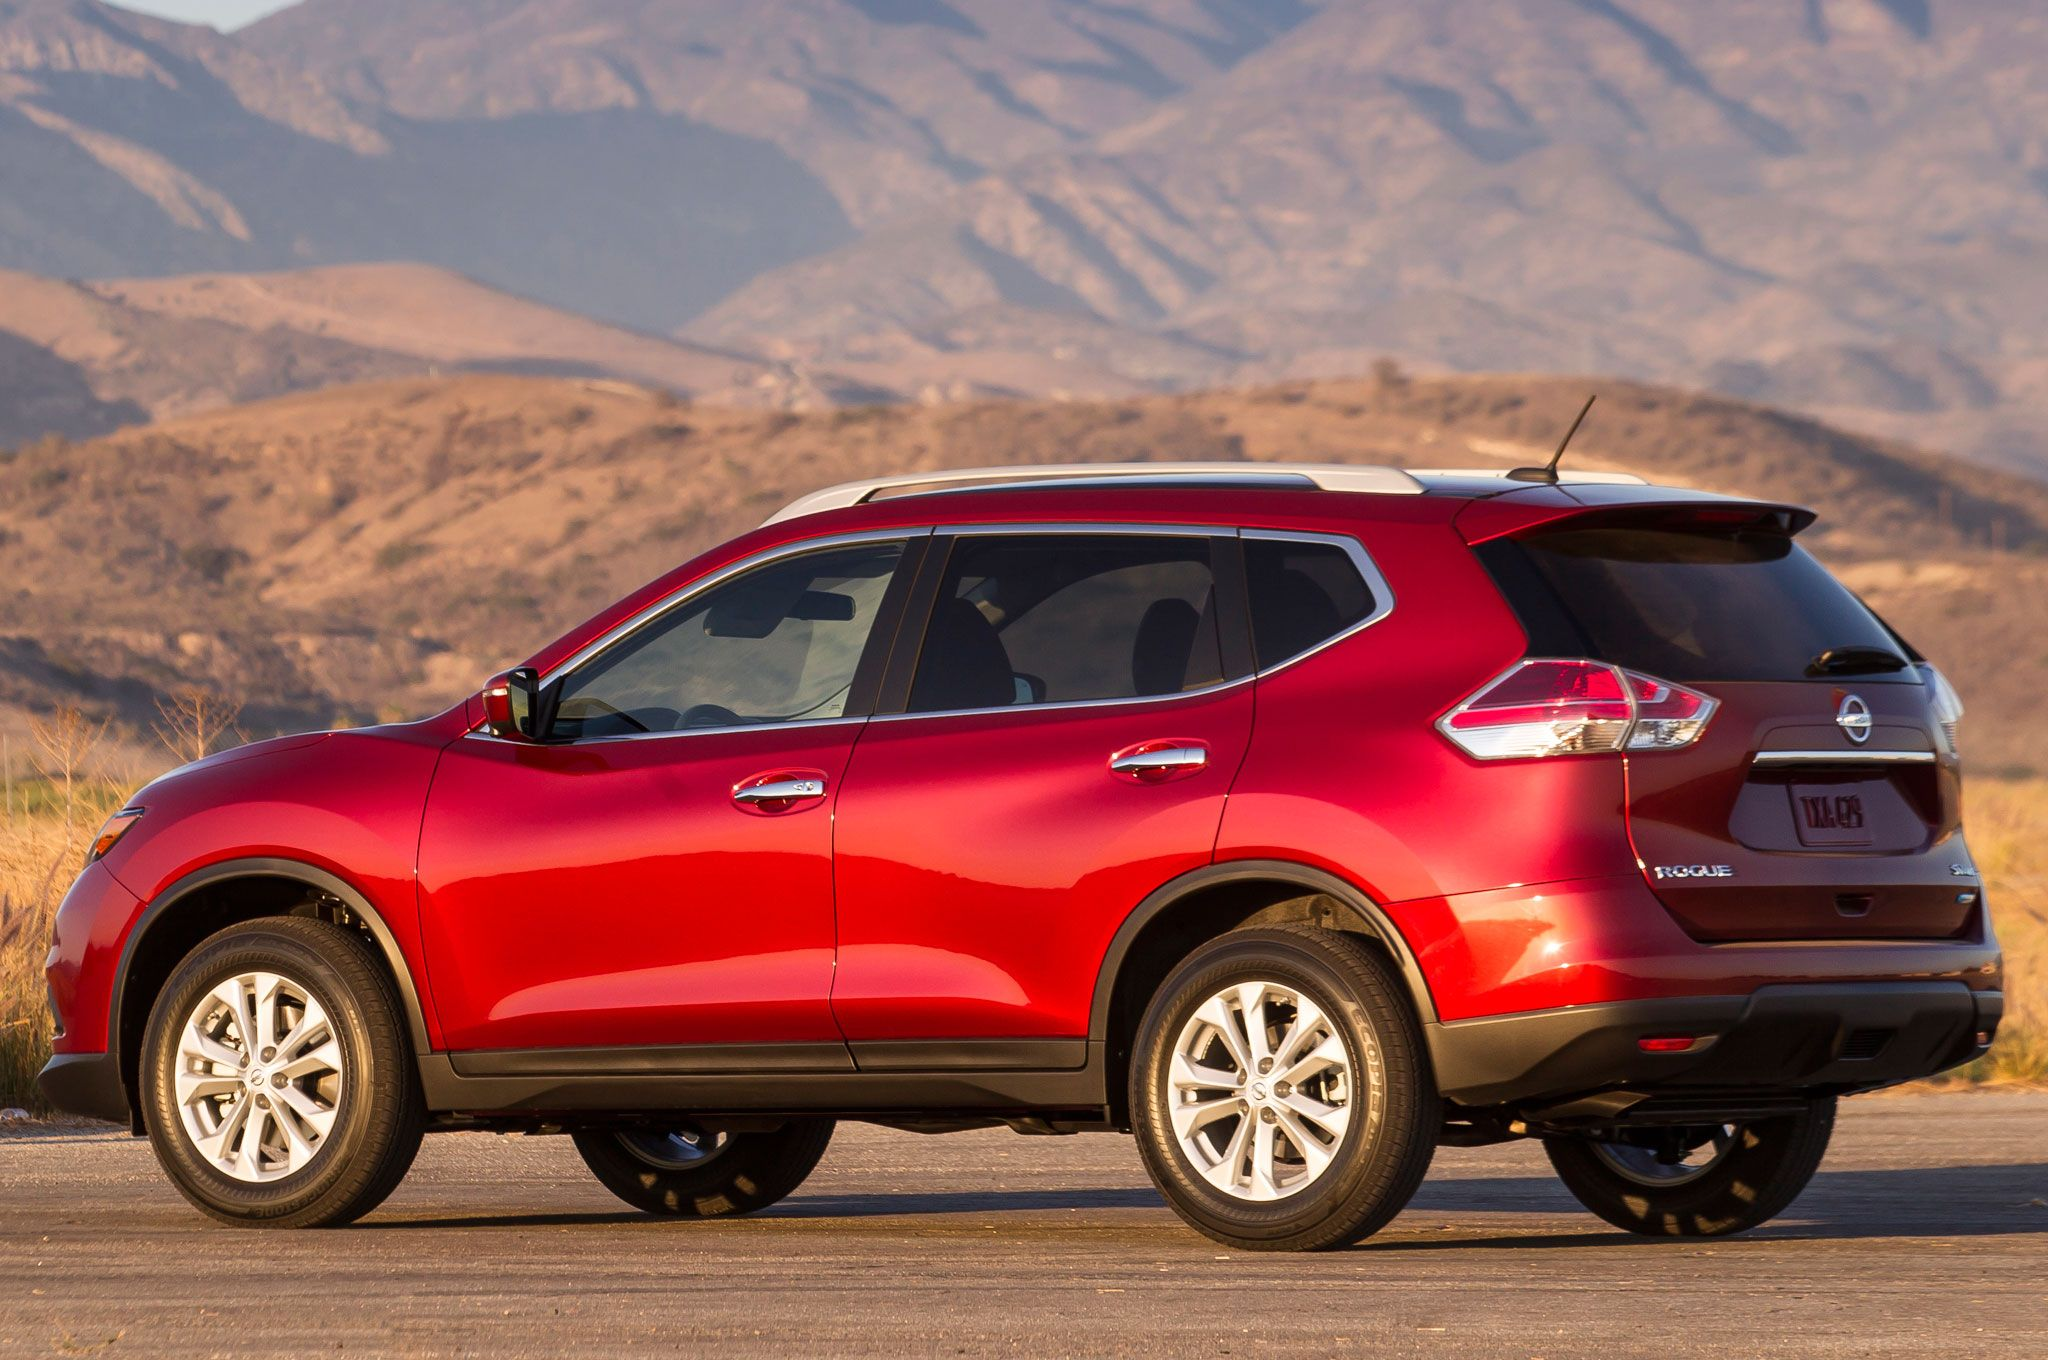 Nissan rogue 2014 totd are the 2014 nissan rogues third row nissan rogue 2014 totd are the 2014 nissan rogues third row seats a vanachro Gallery